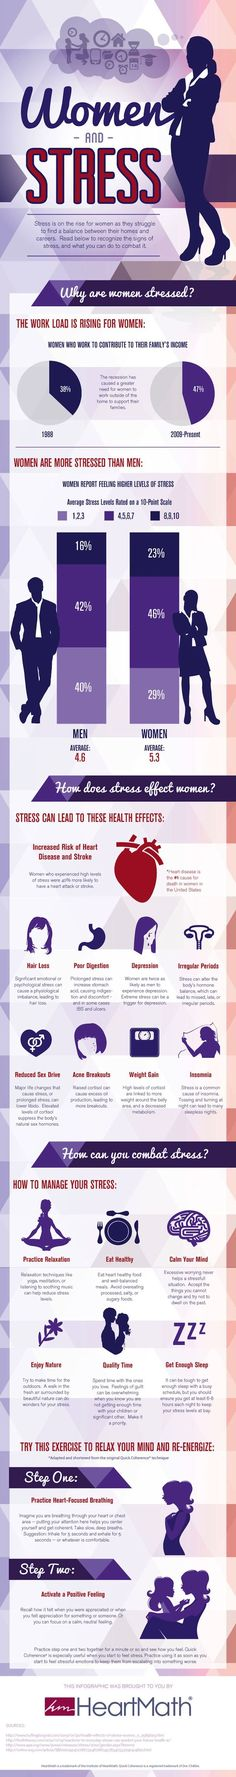 Women Are More Stressed Than Ever [infographic]